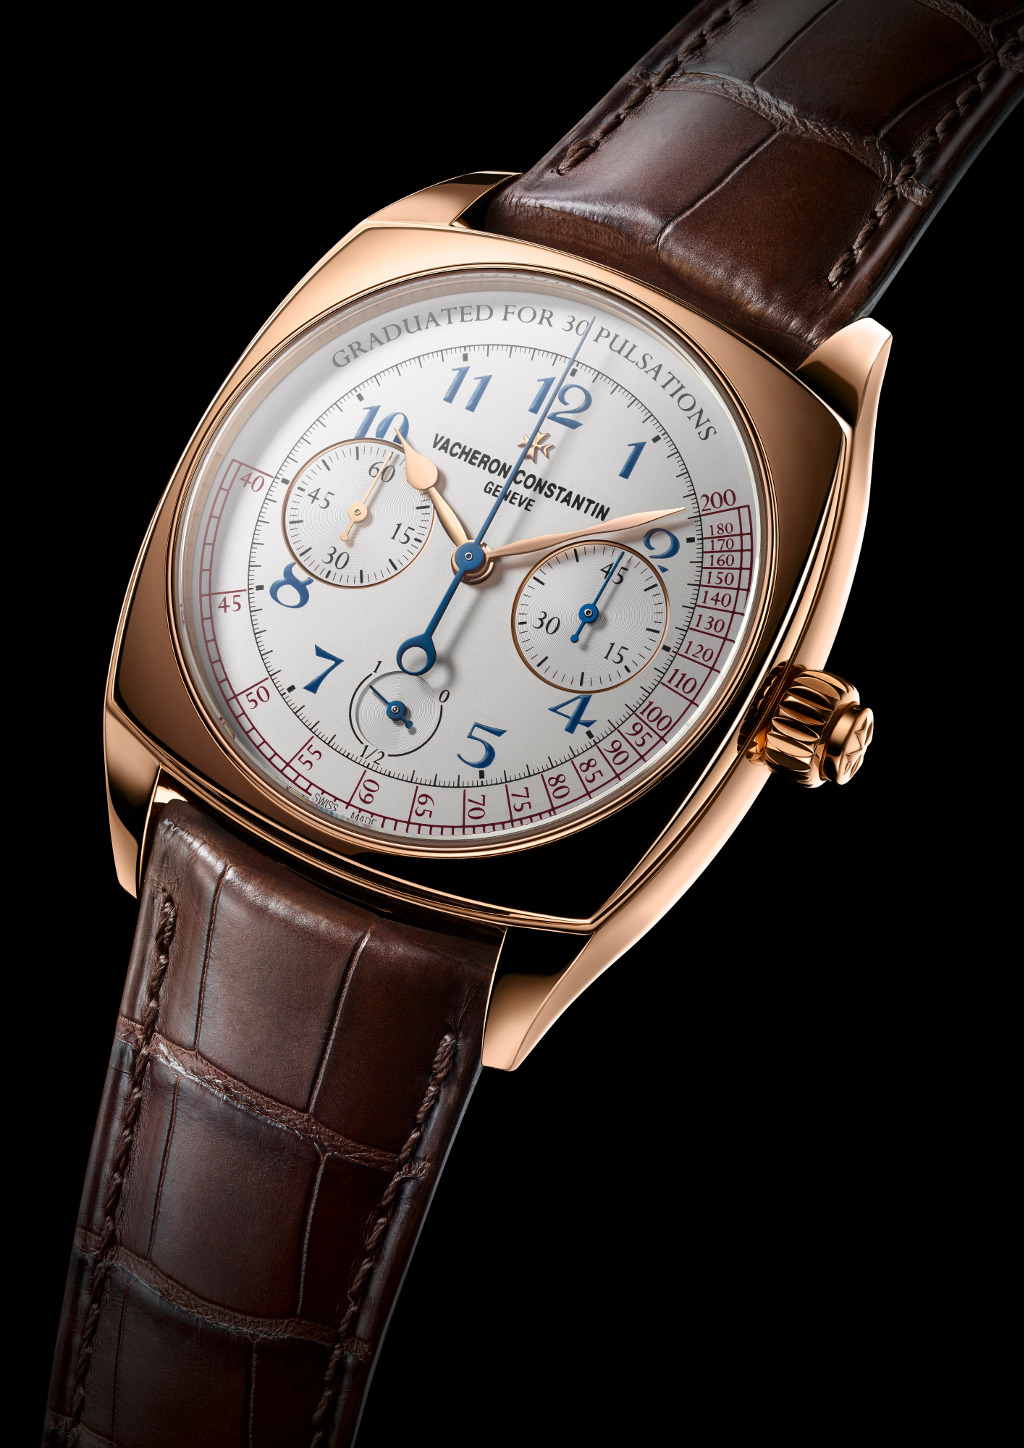 The Vacheron Constantin Harmony Chronograph.